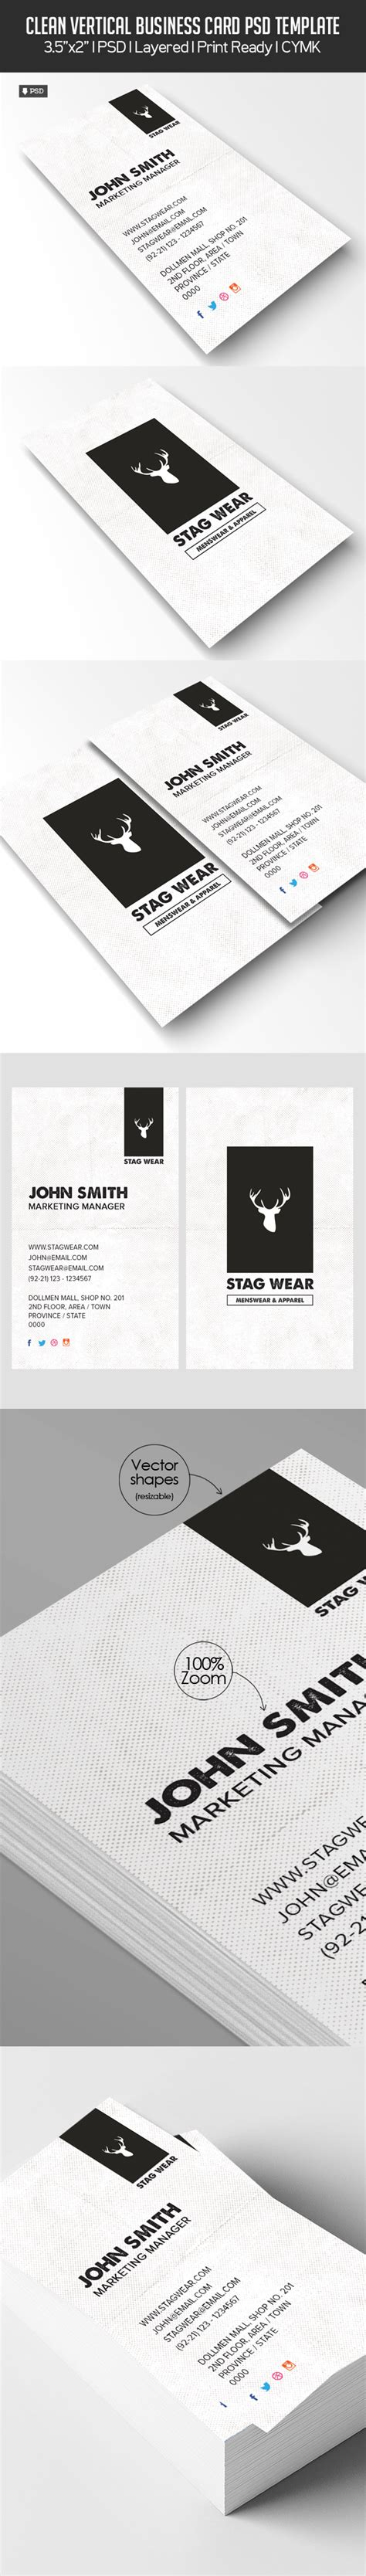 free vertical business card template psd freebie vertical business card psd template freebies